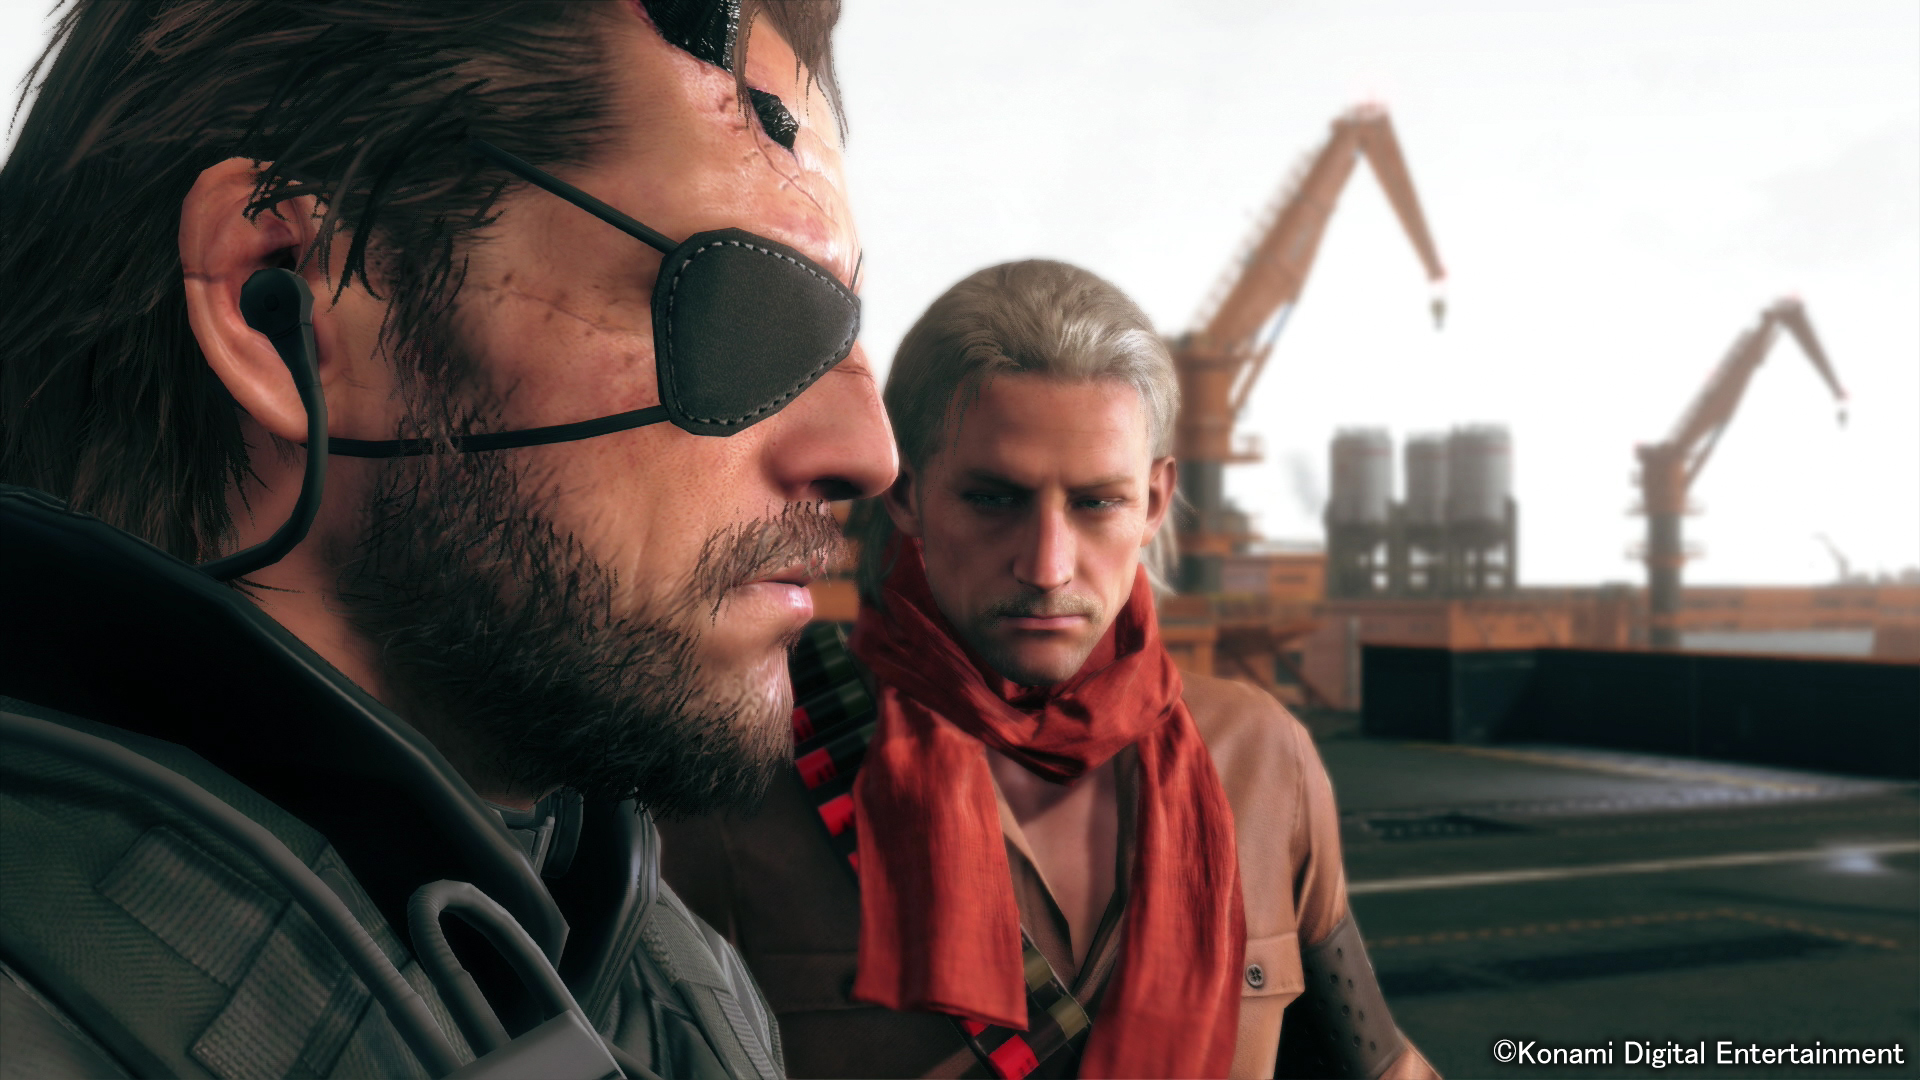 Metal-Gear-Solid-V-The-Phantom-Pain2.jpg